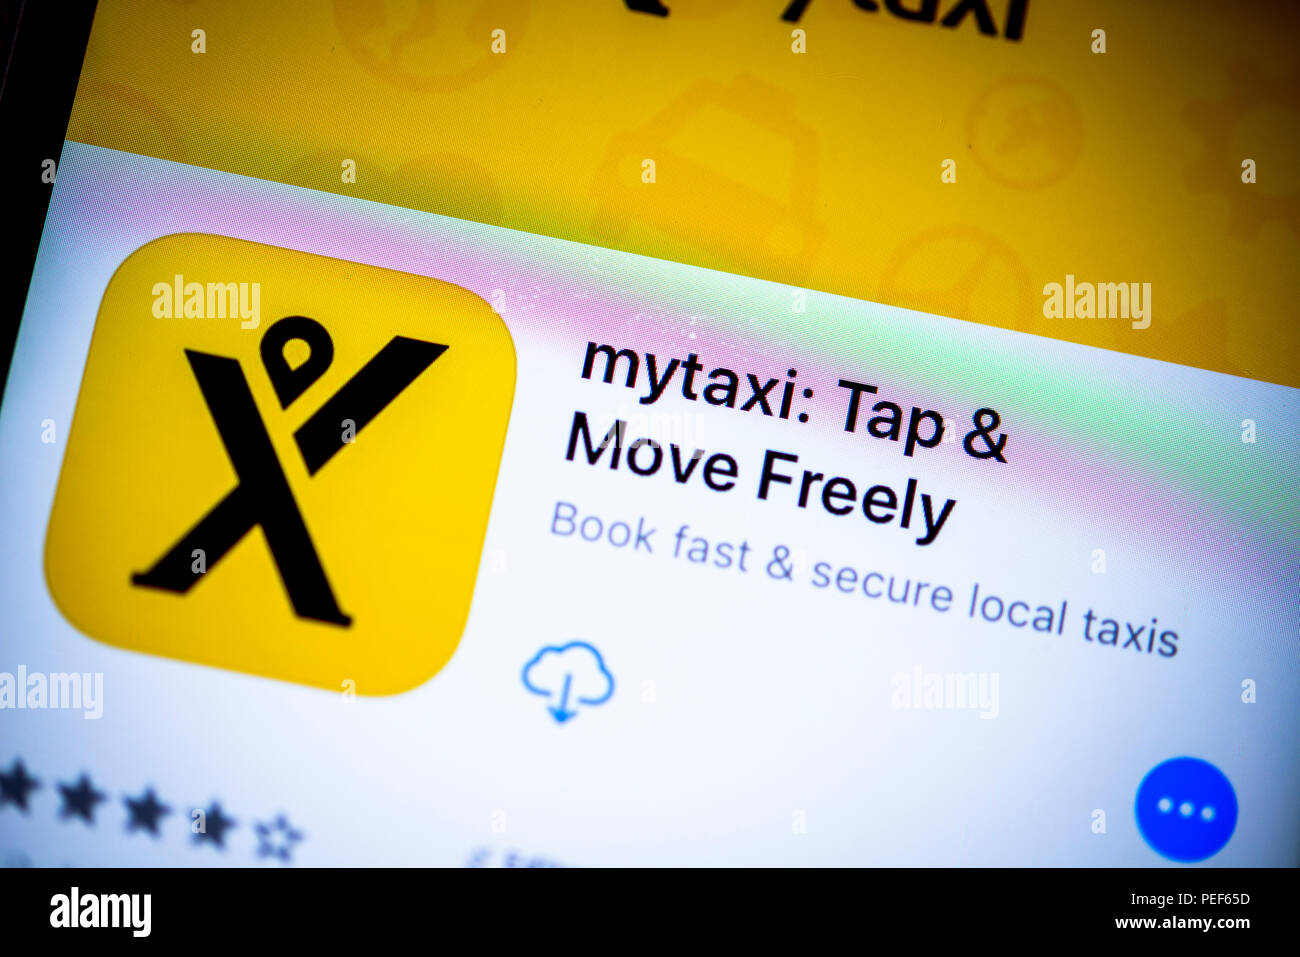 Mytaxi app, taxi hauling app, in the Apple App Store, app icon, display, iPhone, iOS, smartphone, close-up, Germany Stock Photo